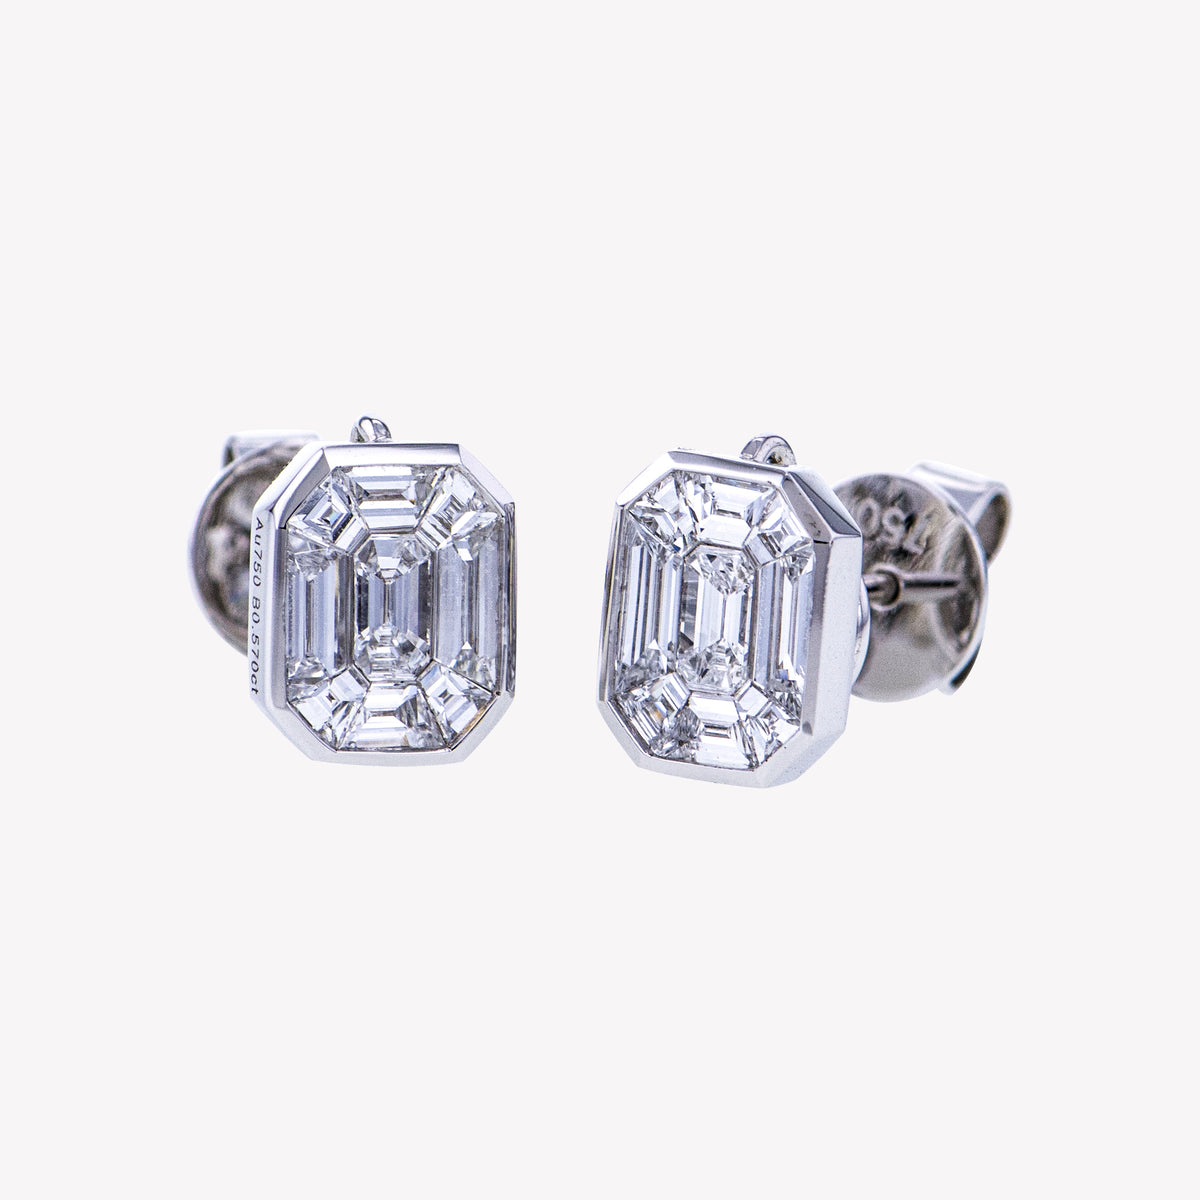 White Gold Emerald Studs Diamond Earrings